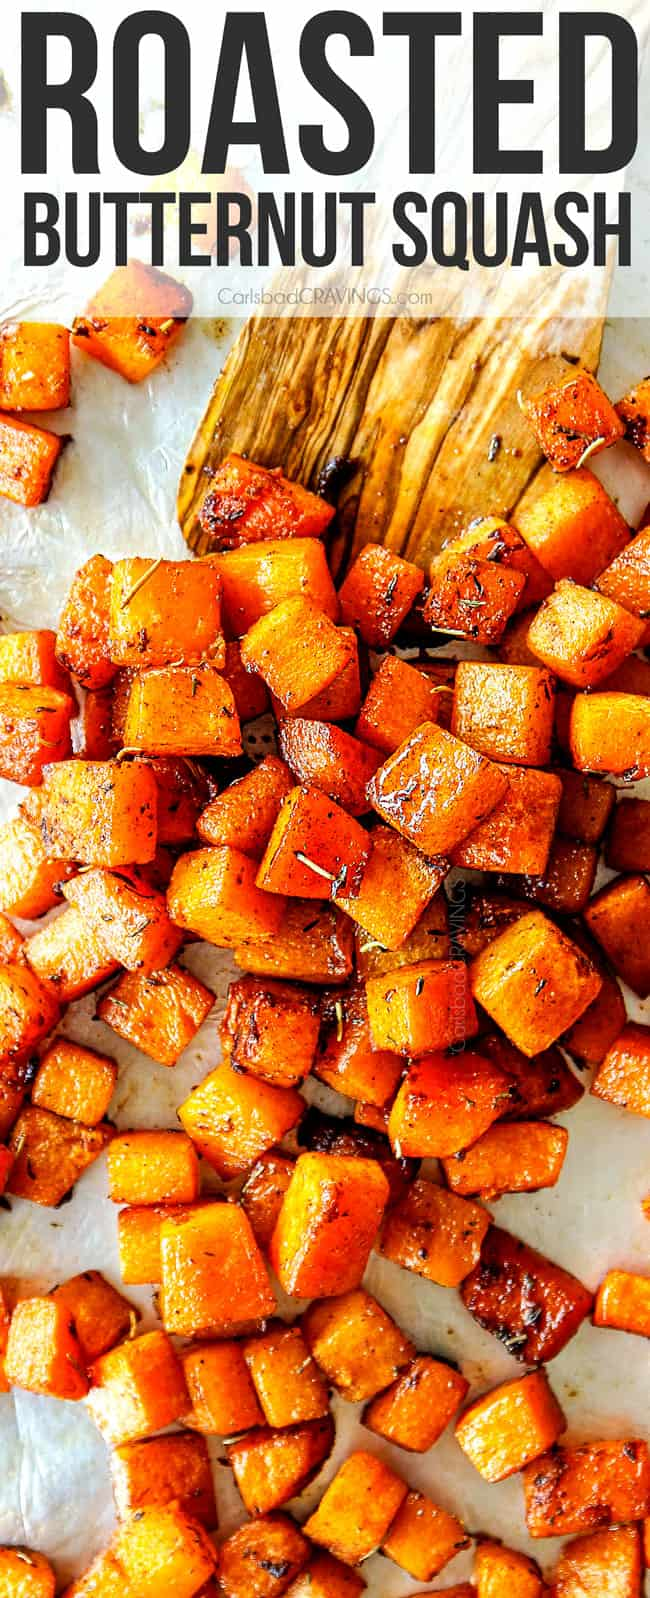 top view of oven roasted butternut squash